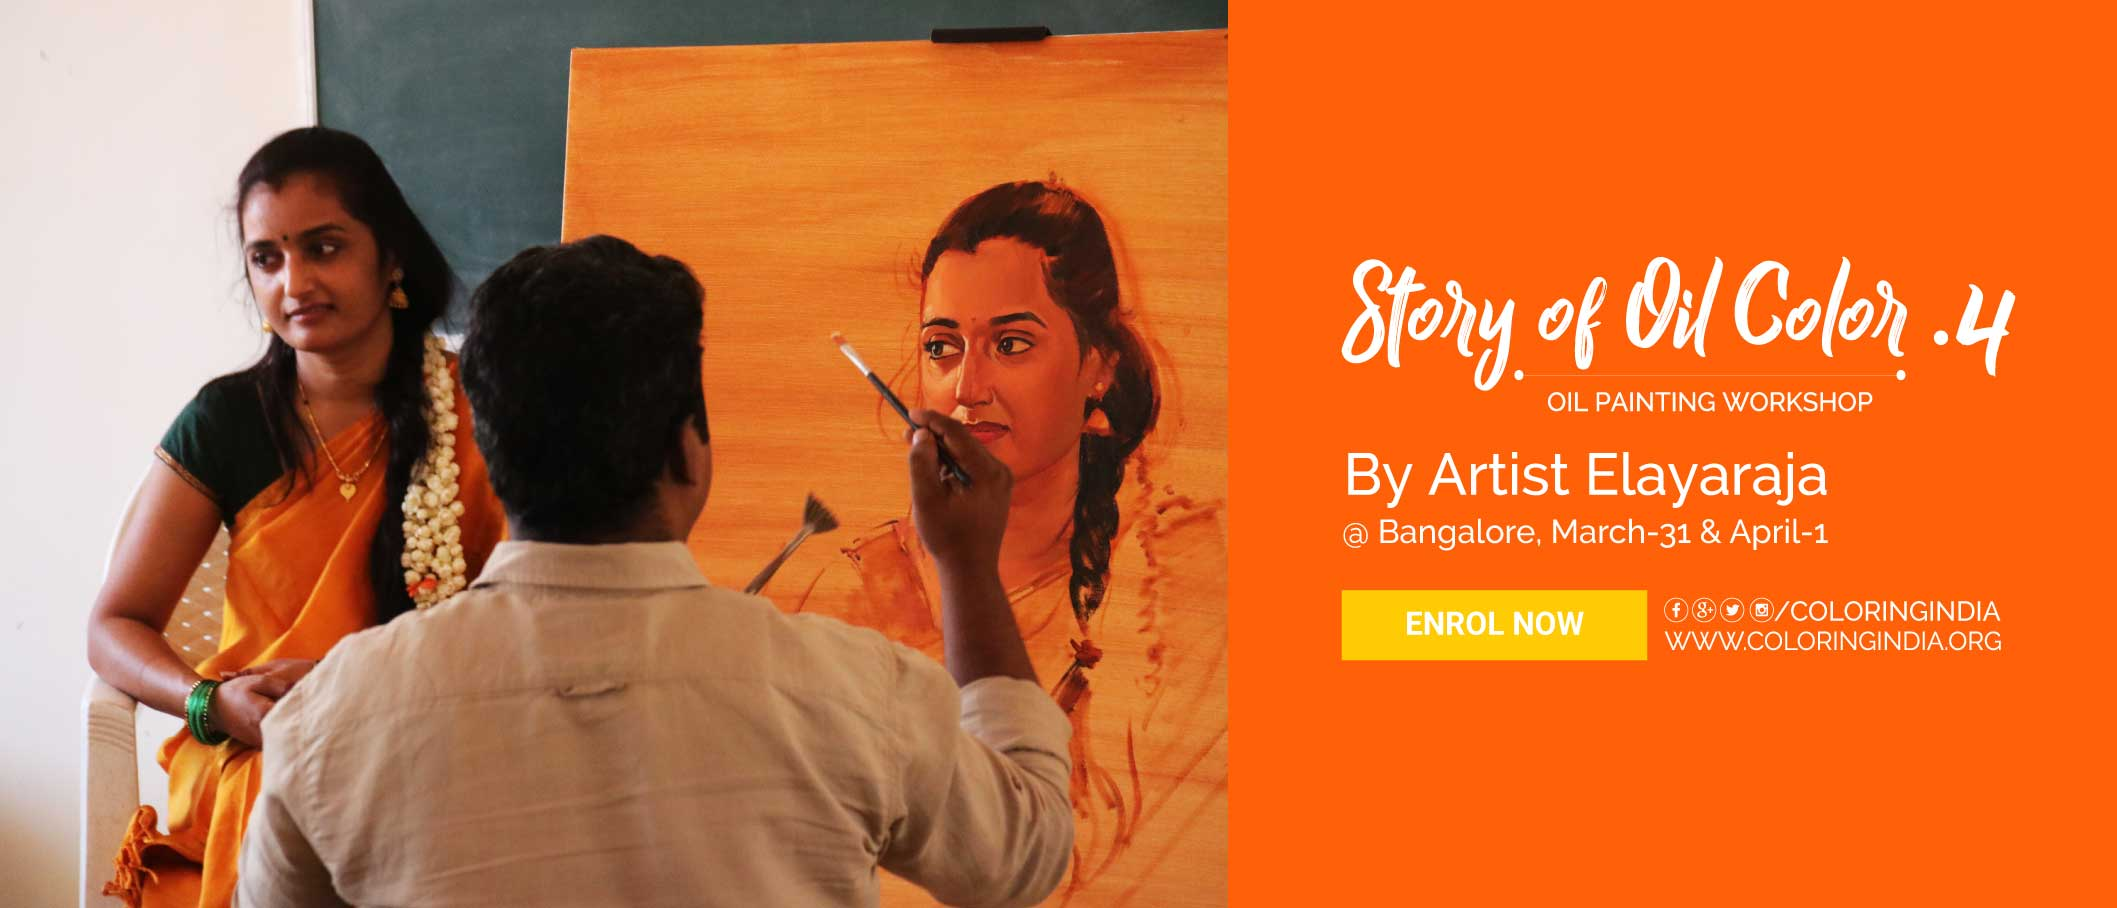 Story of Oil Color 4 – Oil Painting Workshop Bangalore by S.Elayaraja